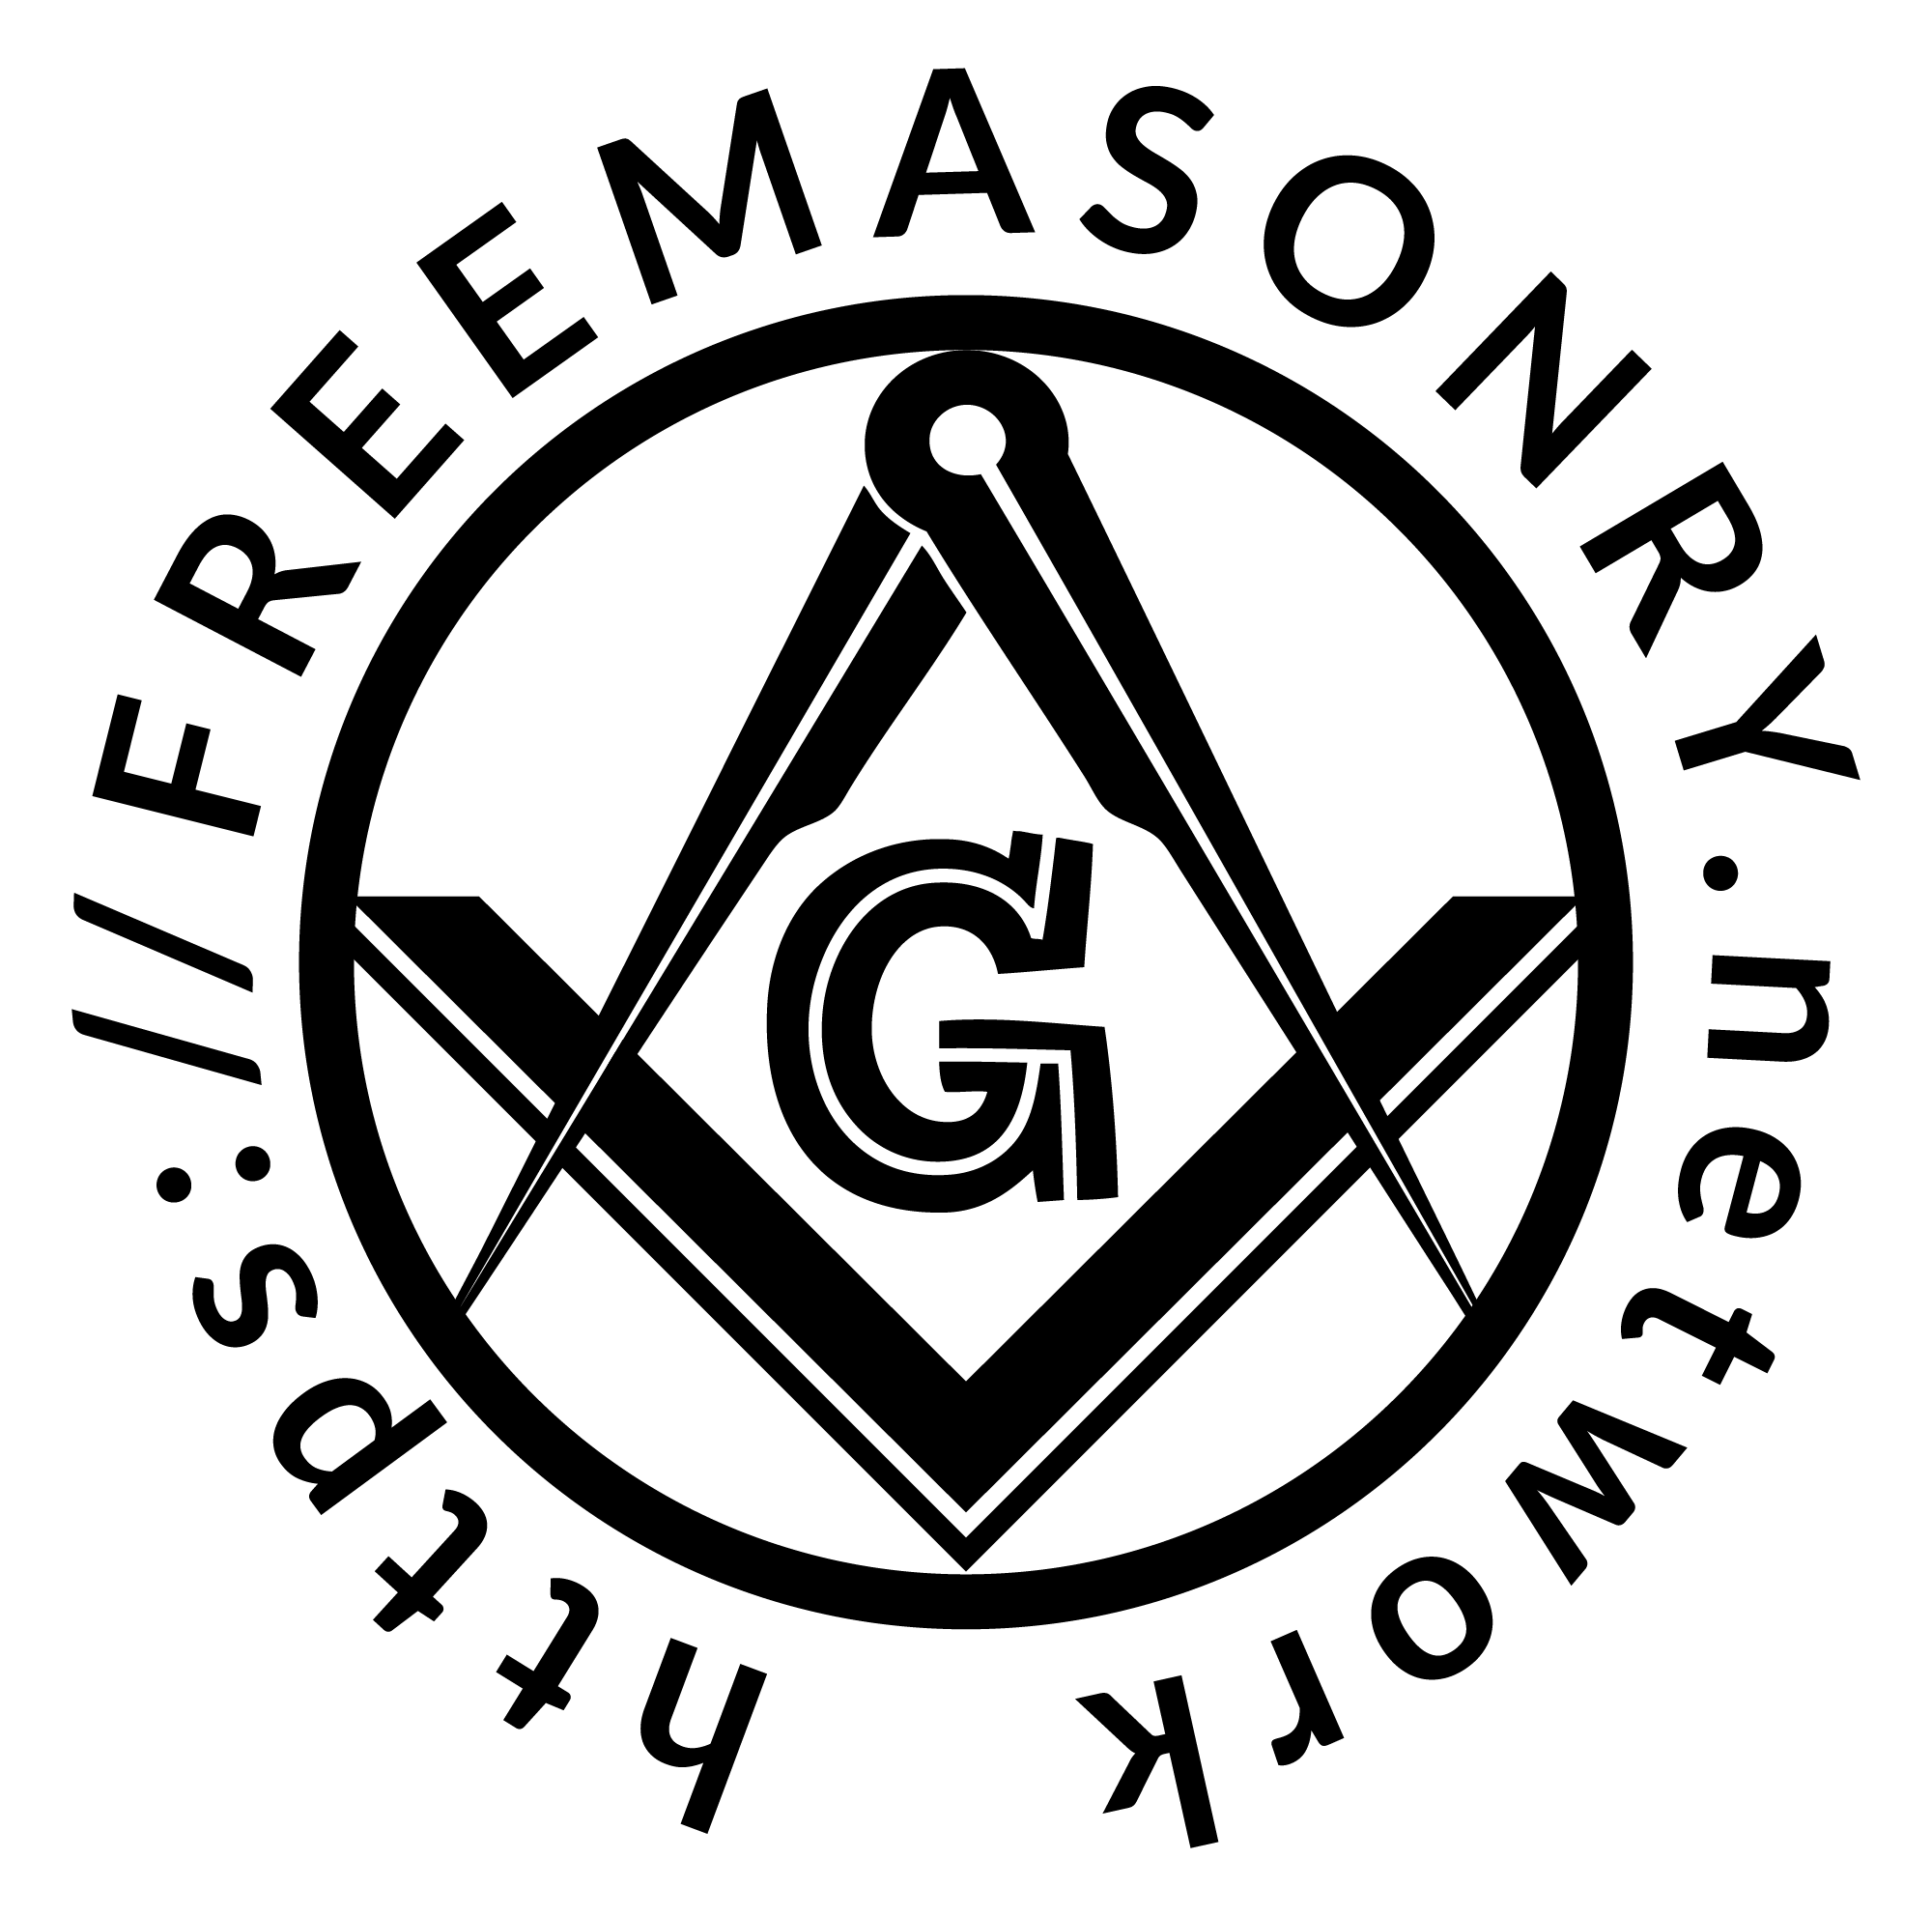 MASONIC CONGRESSES